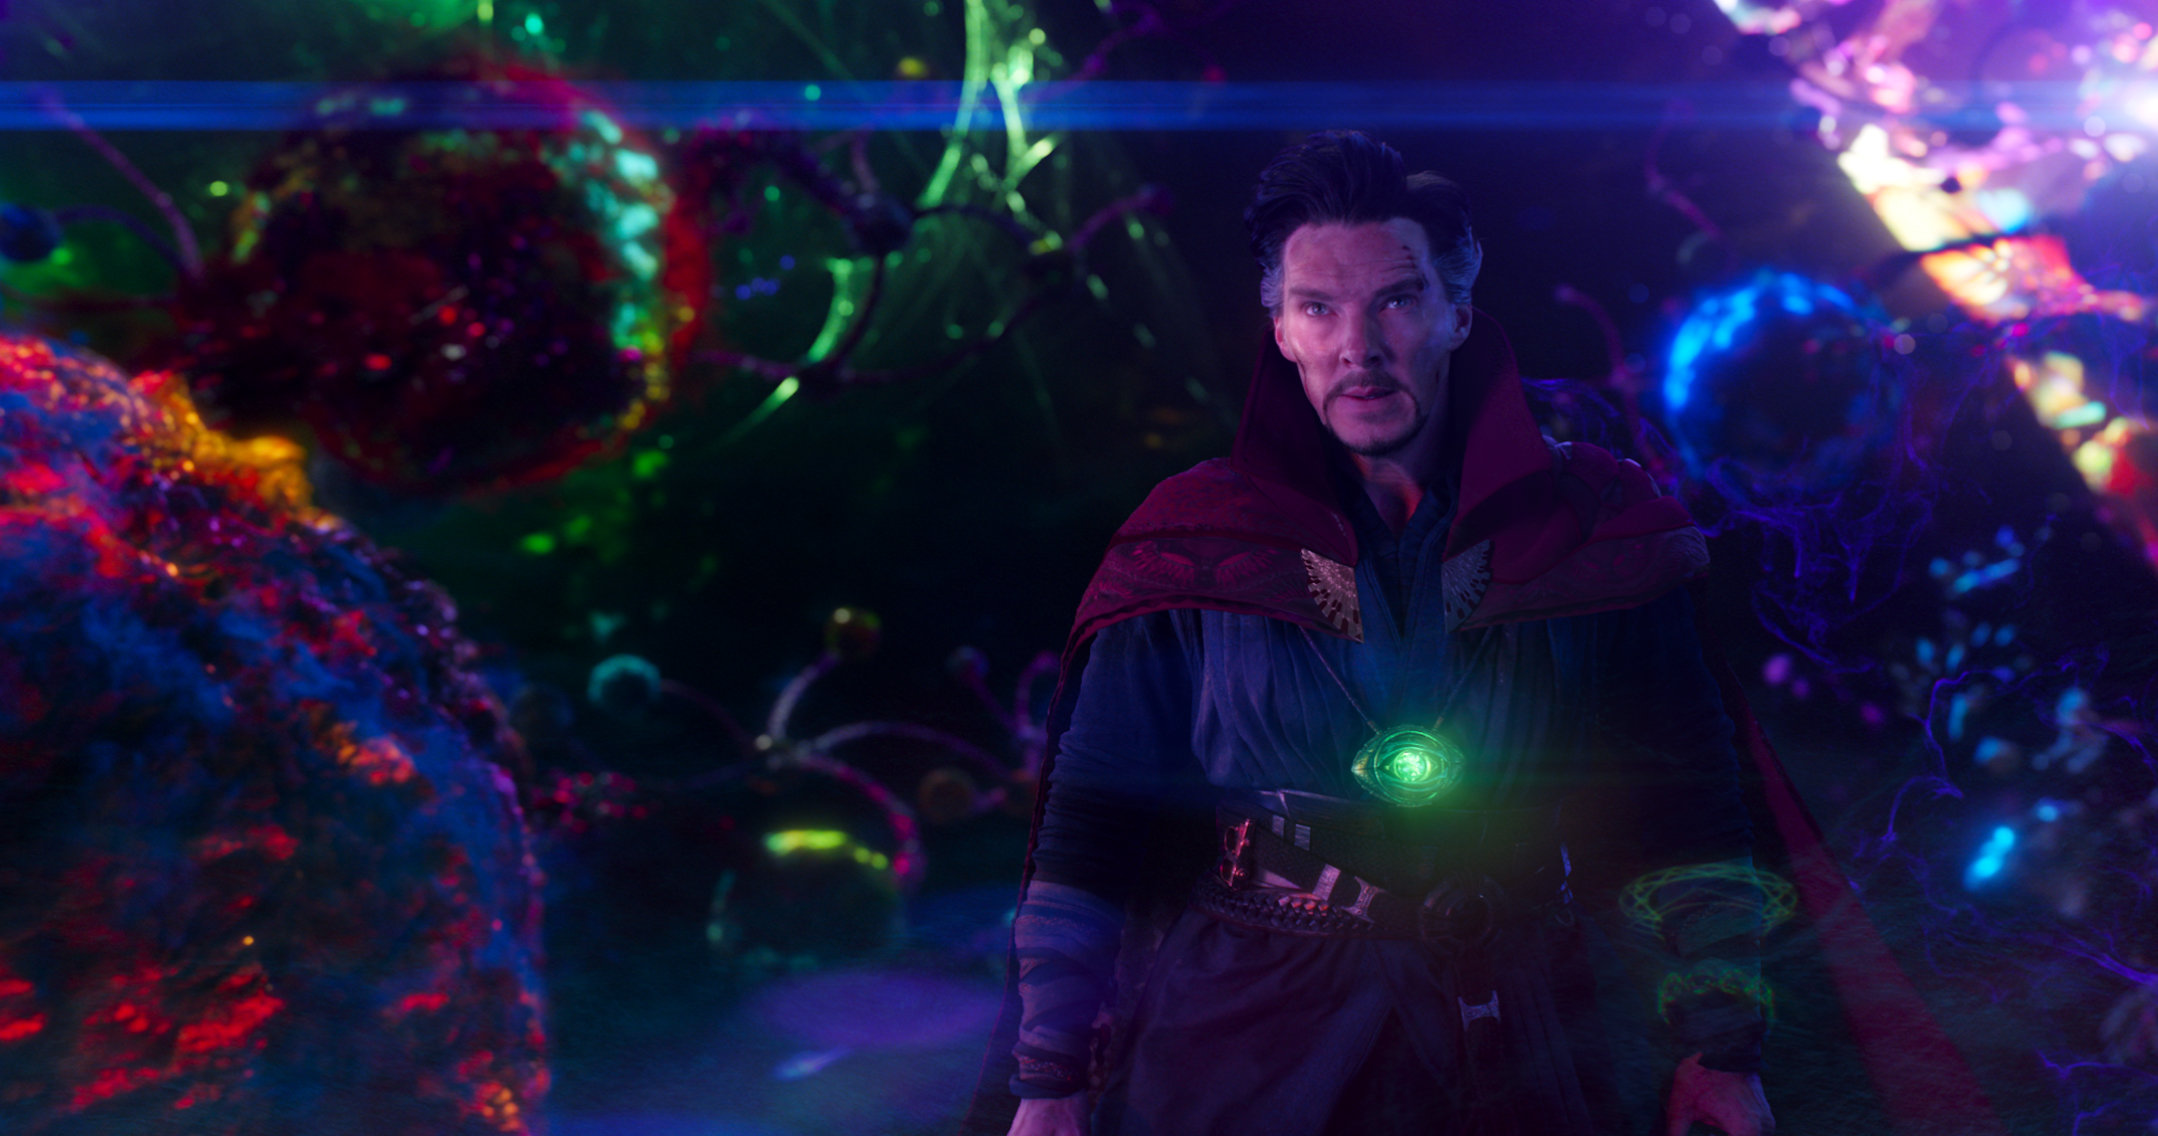 Dormammu I've Come To Bargain | Know Your Meme